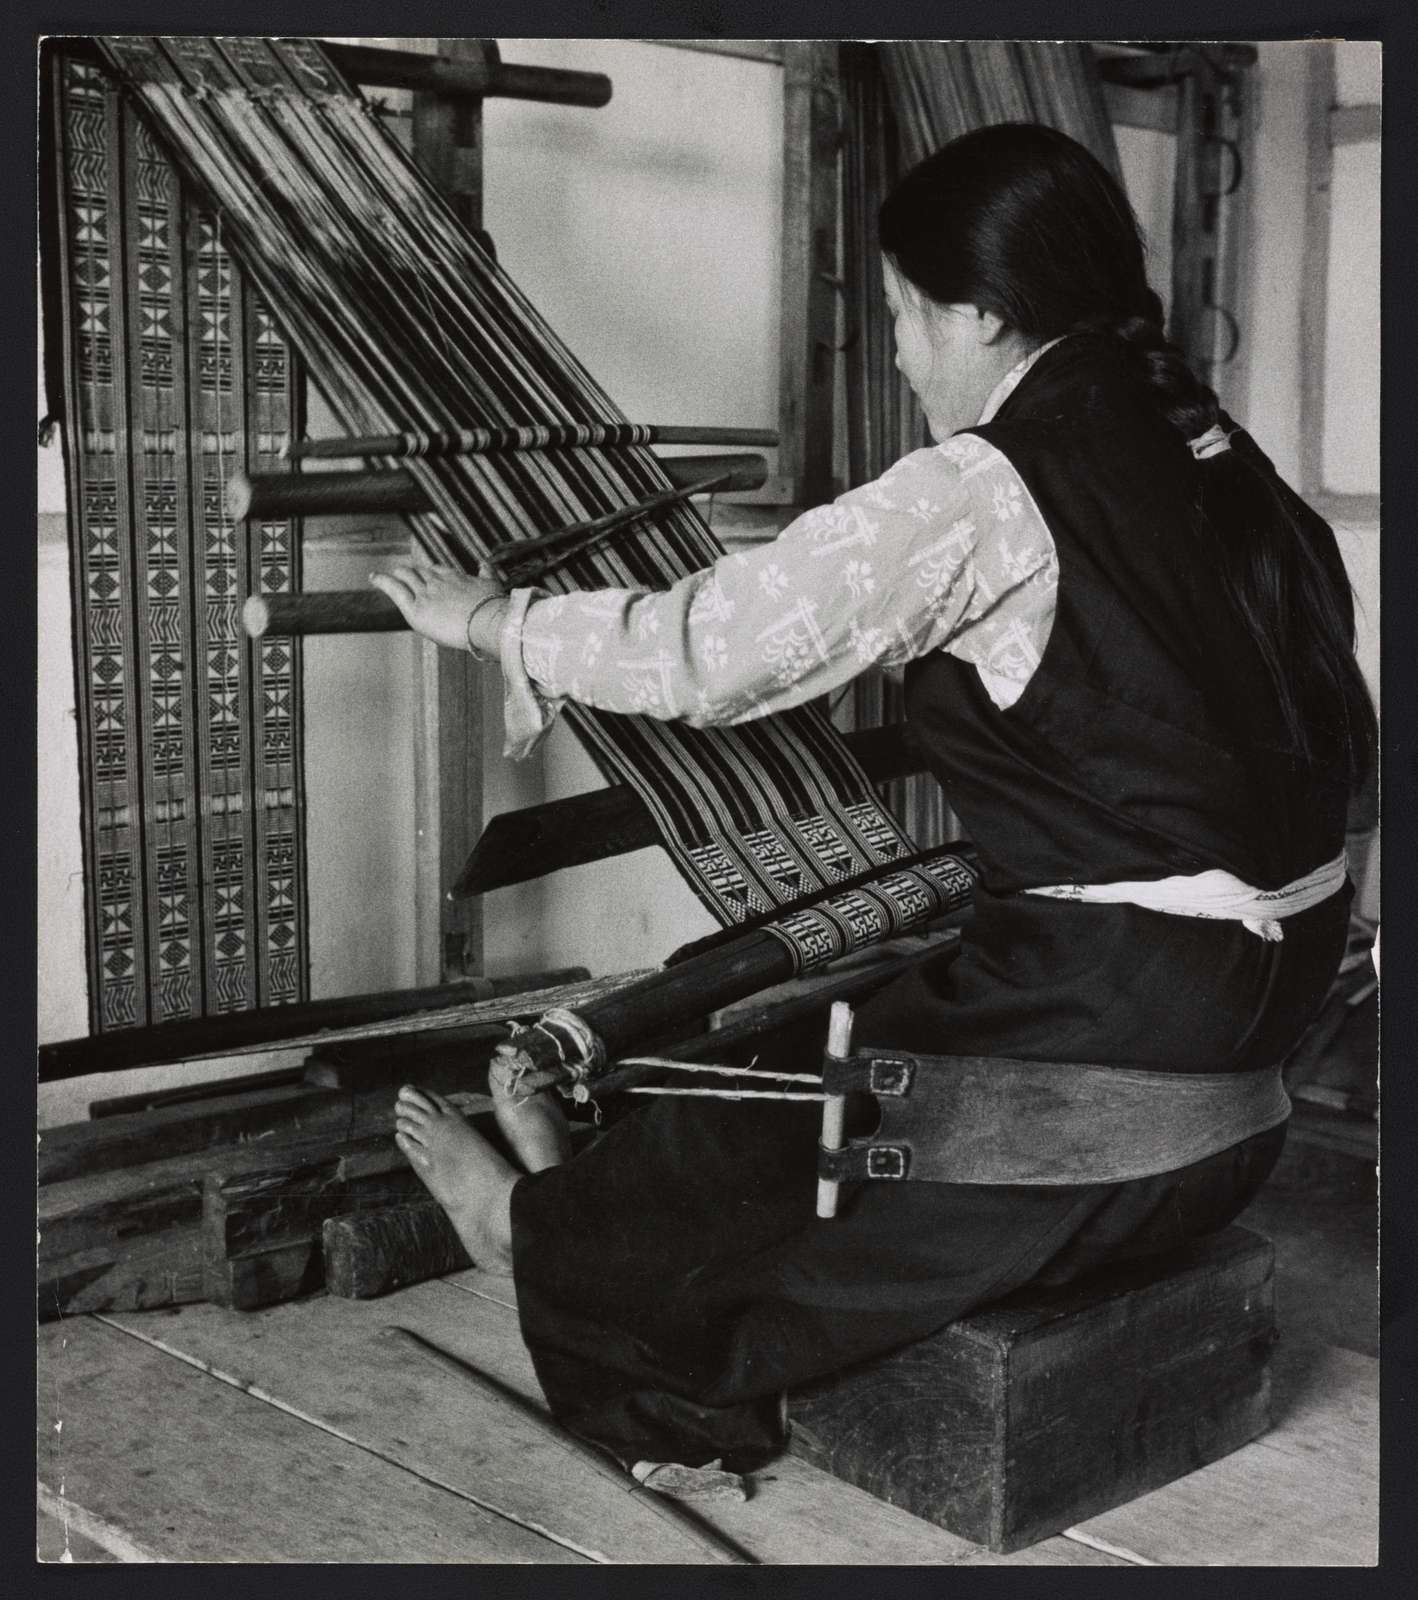 Ancient art of weaving with self-supported back-strap loom. [...] This Sikkimese girl is weaving Lepcha tribal weave cloth worn as a dress